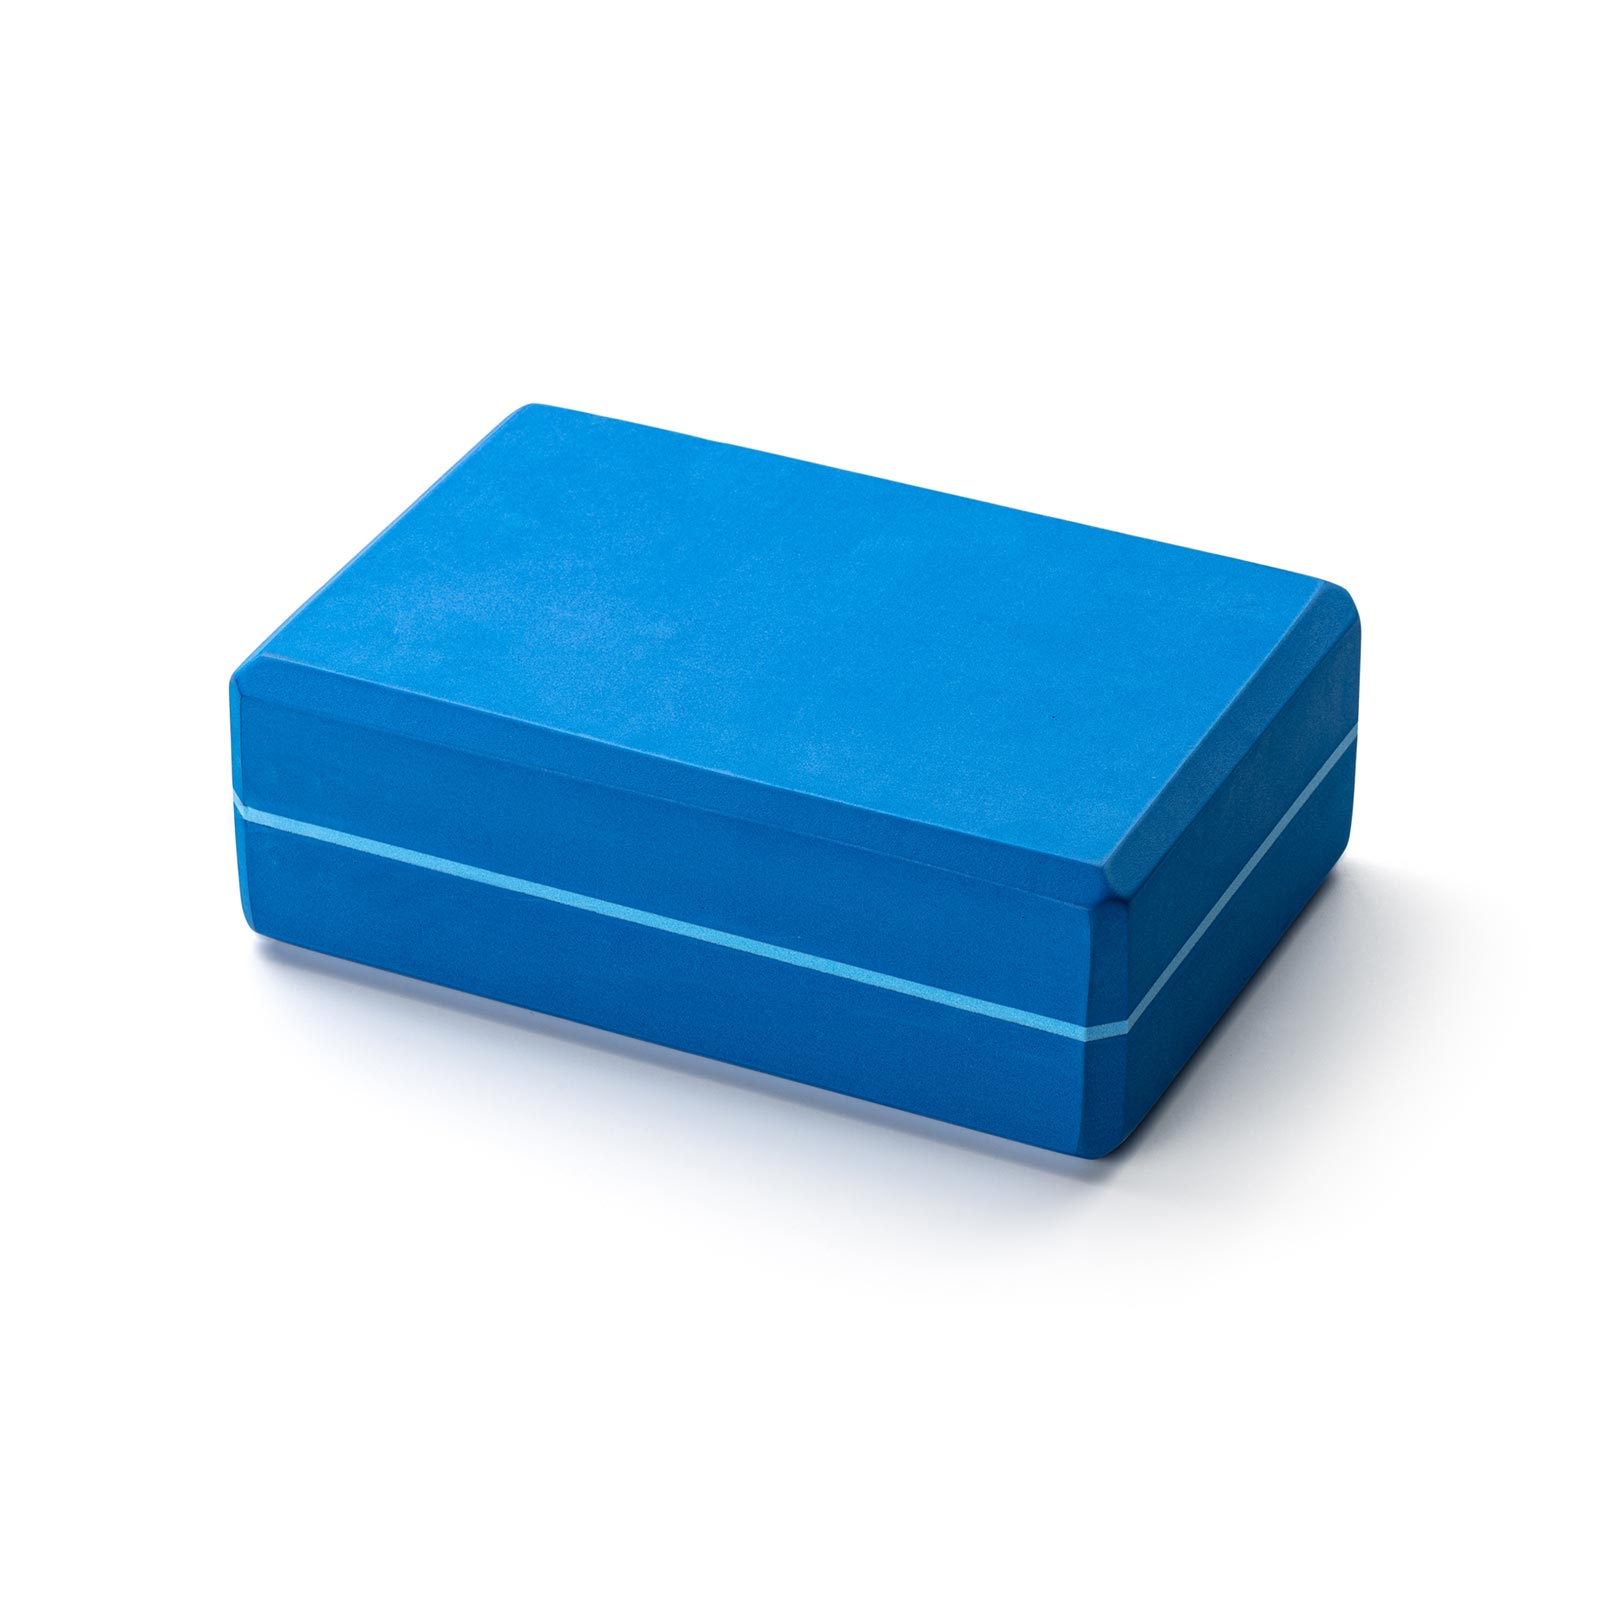 Kurma Yoga Foam Block Brick Striped Blue